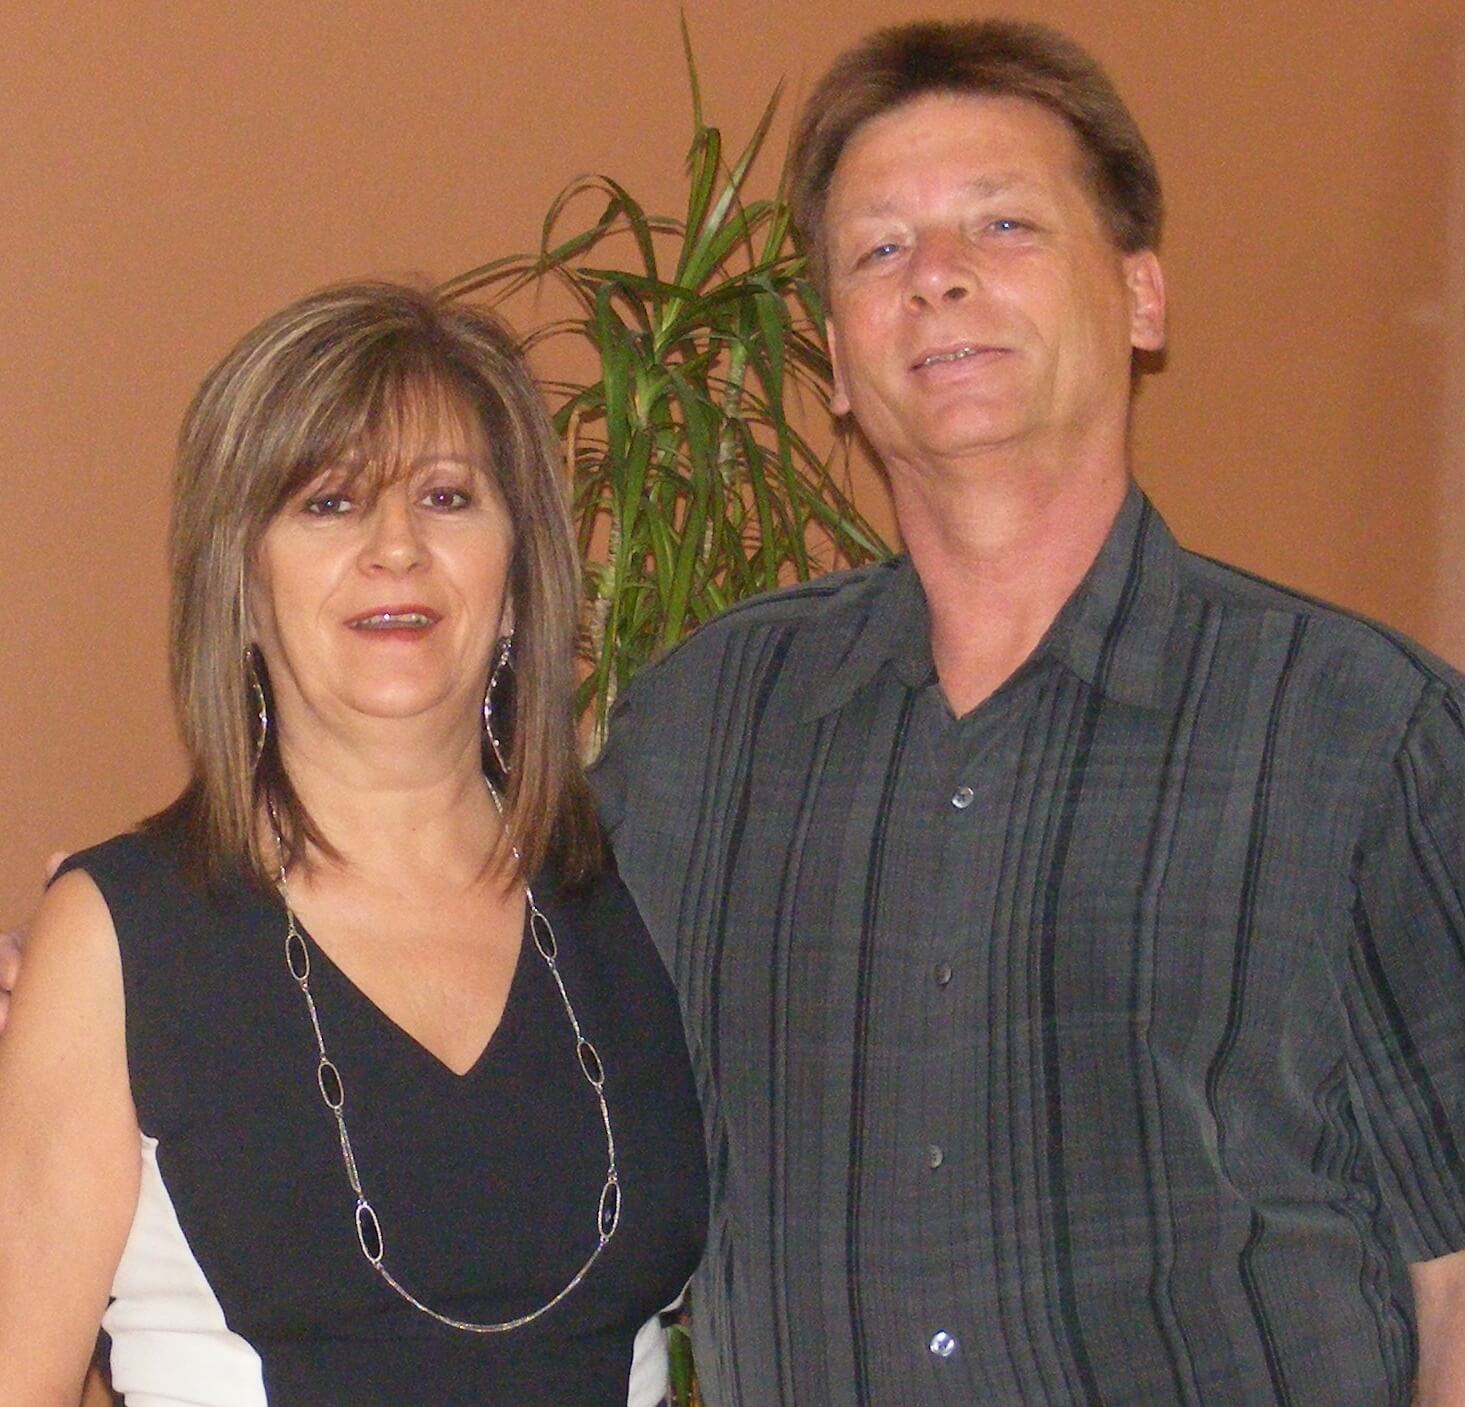 John and Tina Golloher